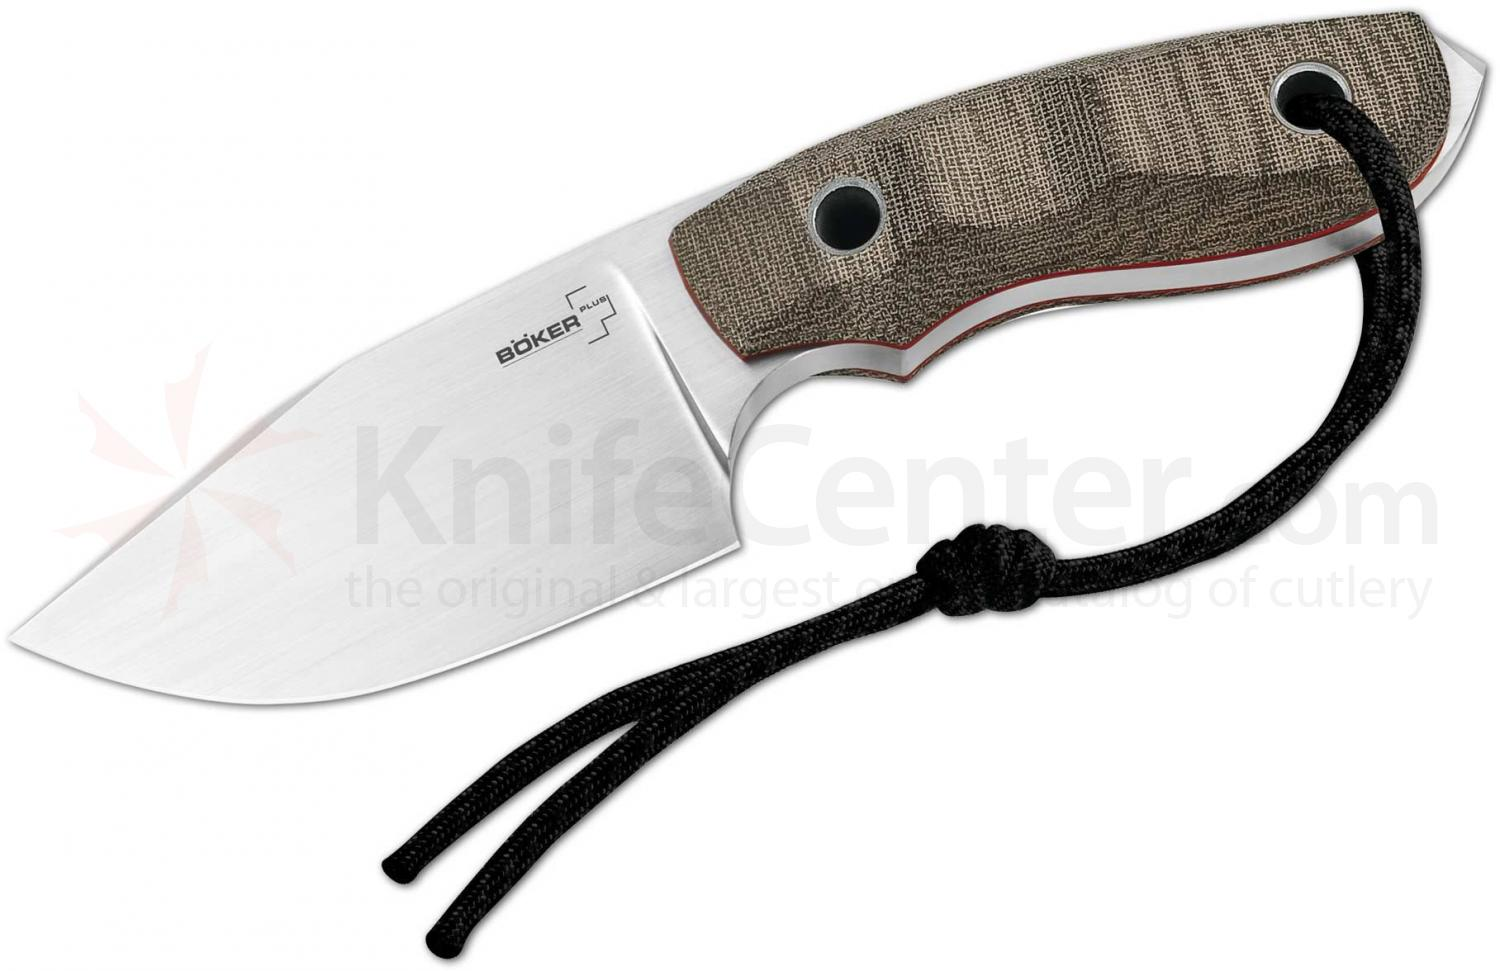 Boker Plus Elegance Vox Bob Fixed 3.75 inch Blade, Micarta Handles, Kydex Sheath